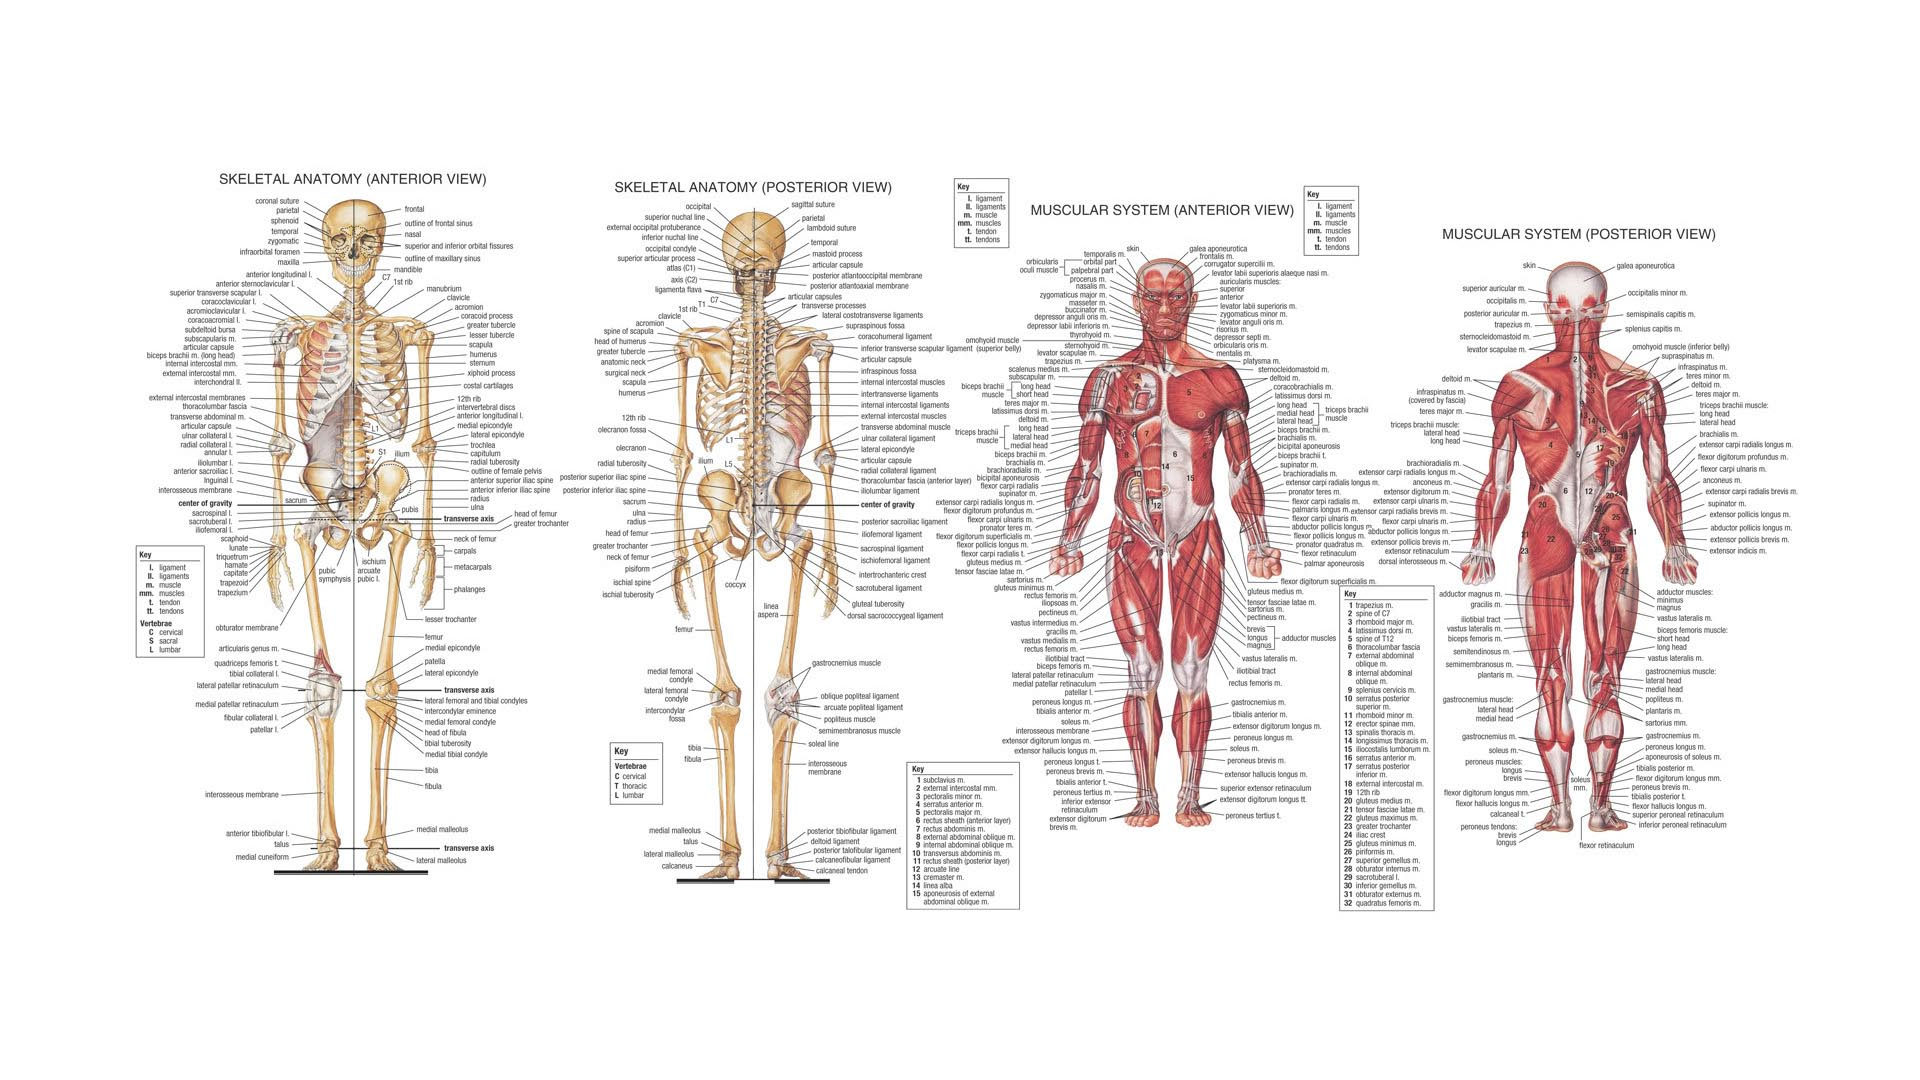 1920x1080 > Anatomy Wallpapers